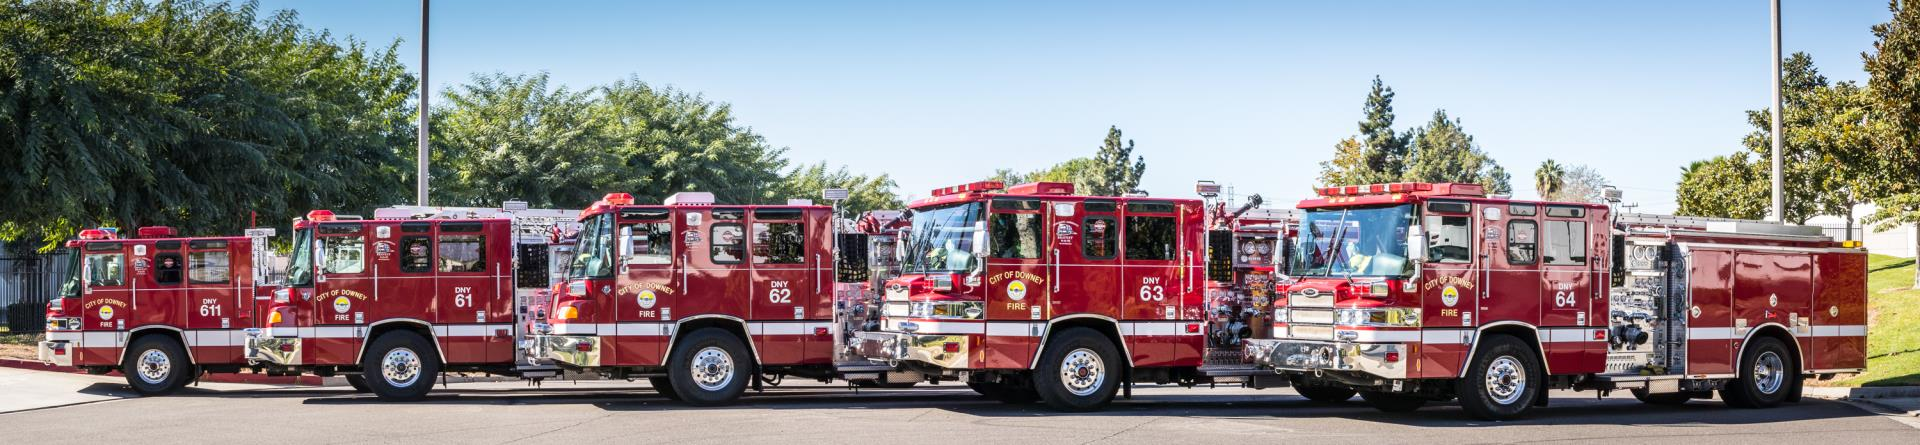 Fleet of fire trucks